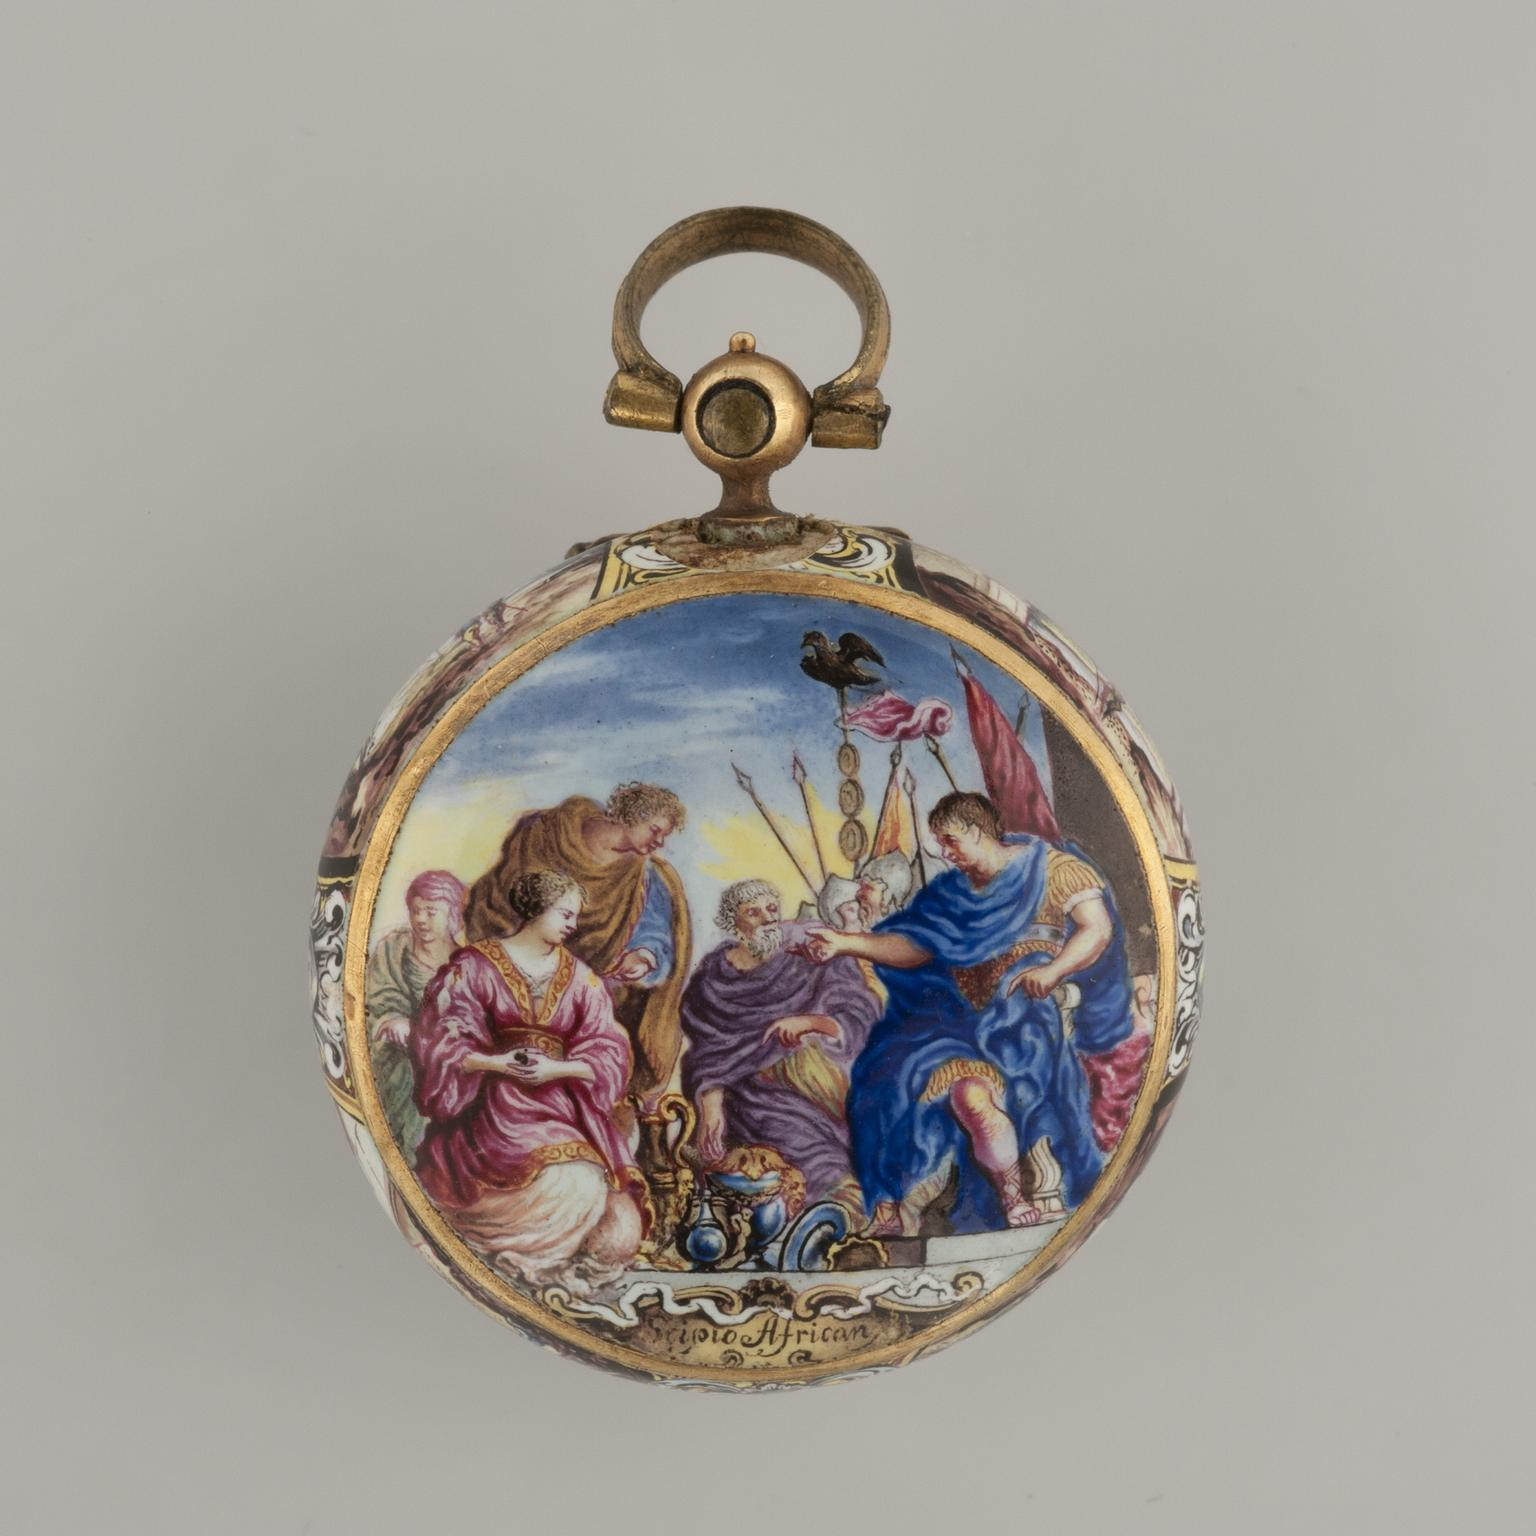 The continence of scipio pocket watch